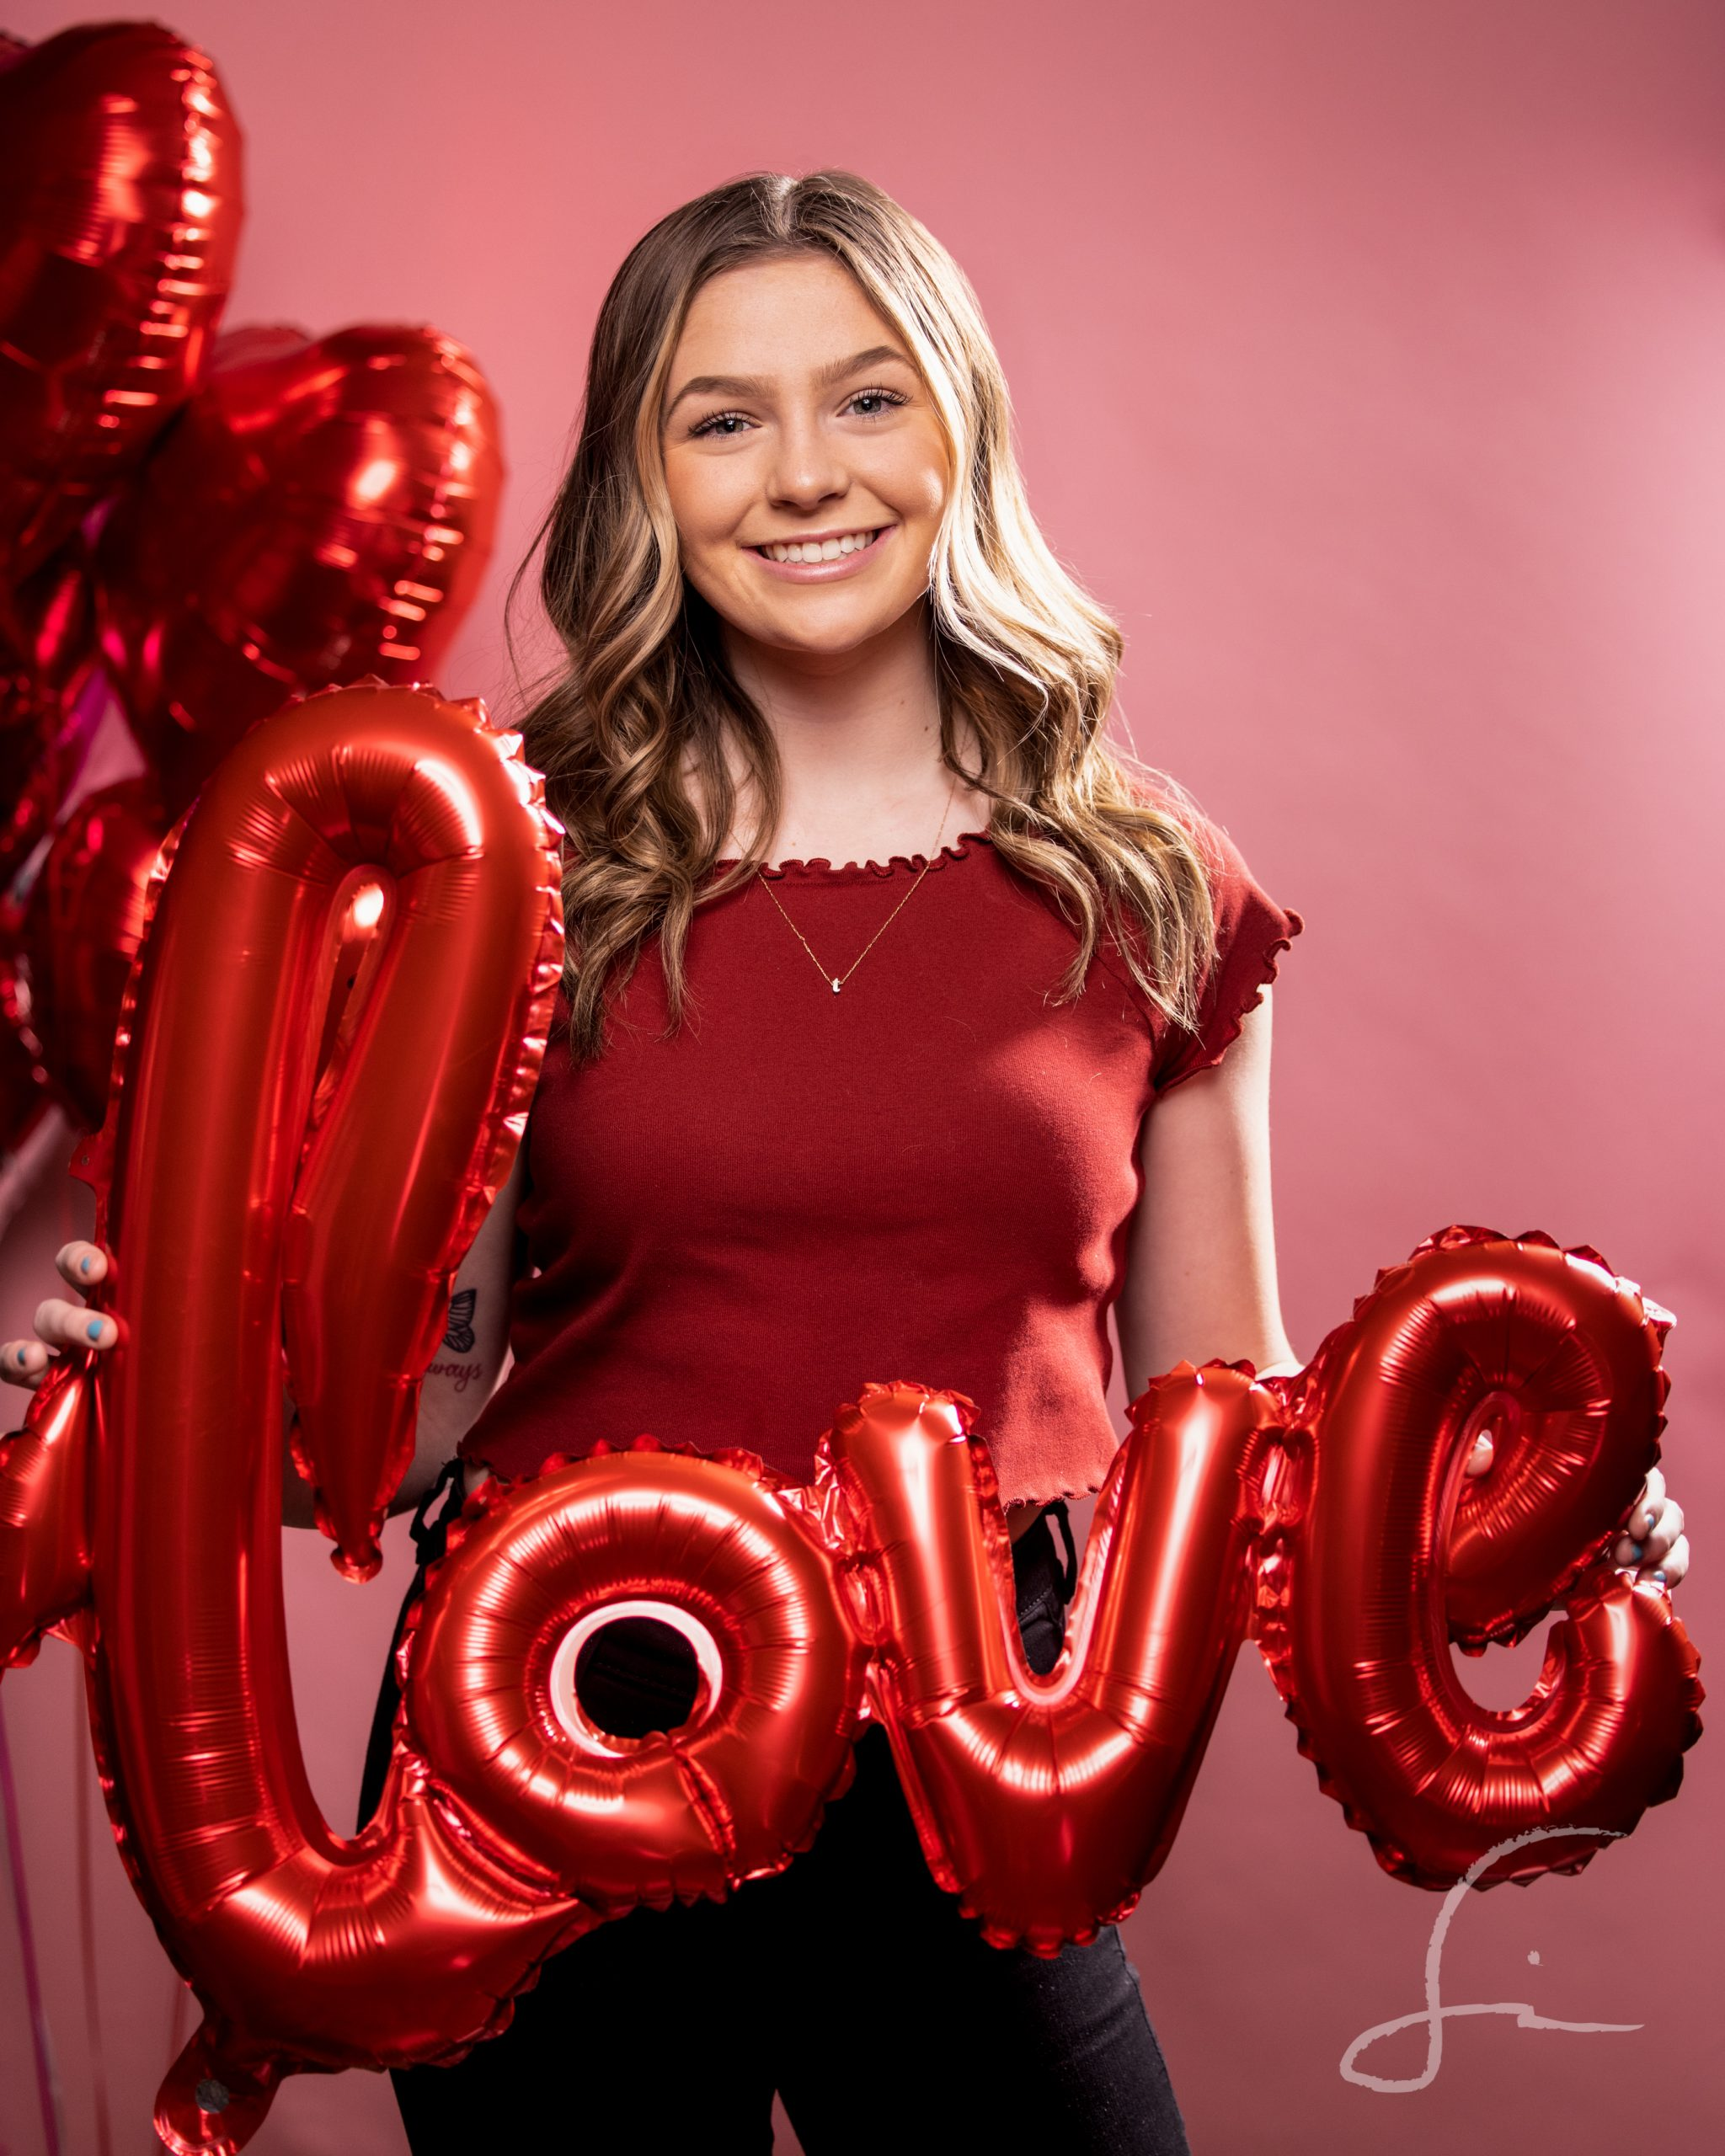 Young woman holding a balloon that spells out love on a pink bacground